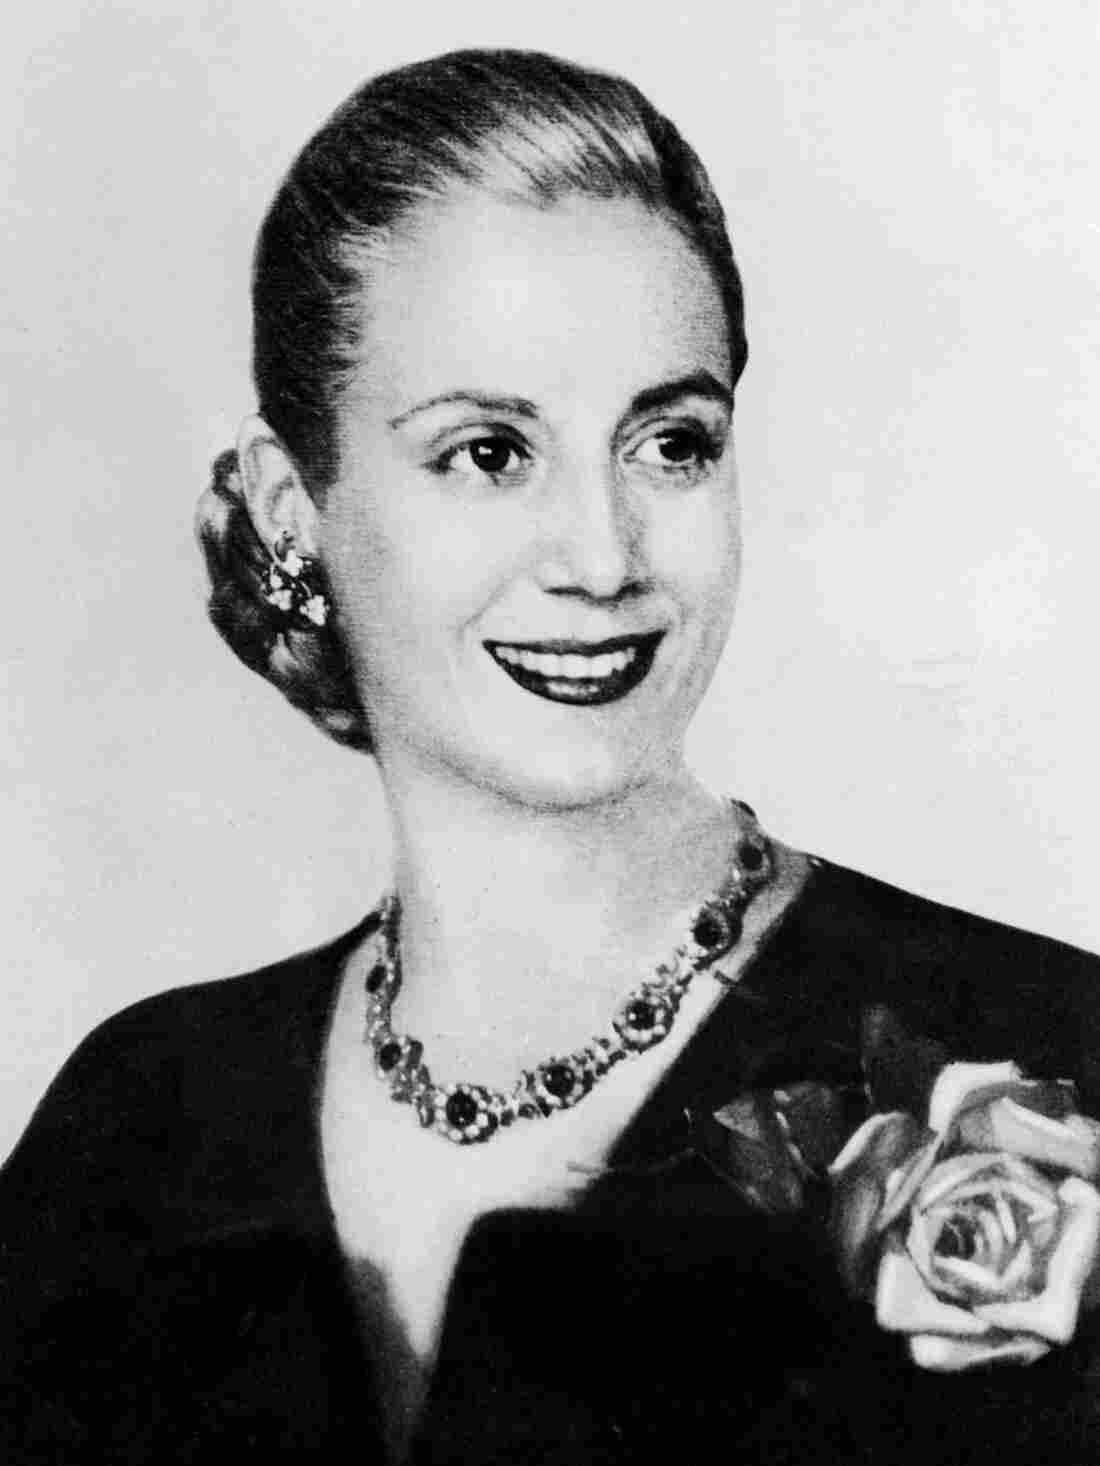 Eva Peron, known as Evita, the second wife of Argentine President Juan Peron, was a radio and screen actress before her marriage in 1945. She became a powerful political influence and a mainstay of the Peron government.